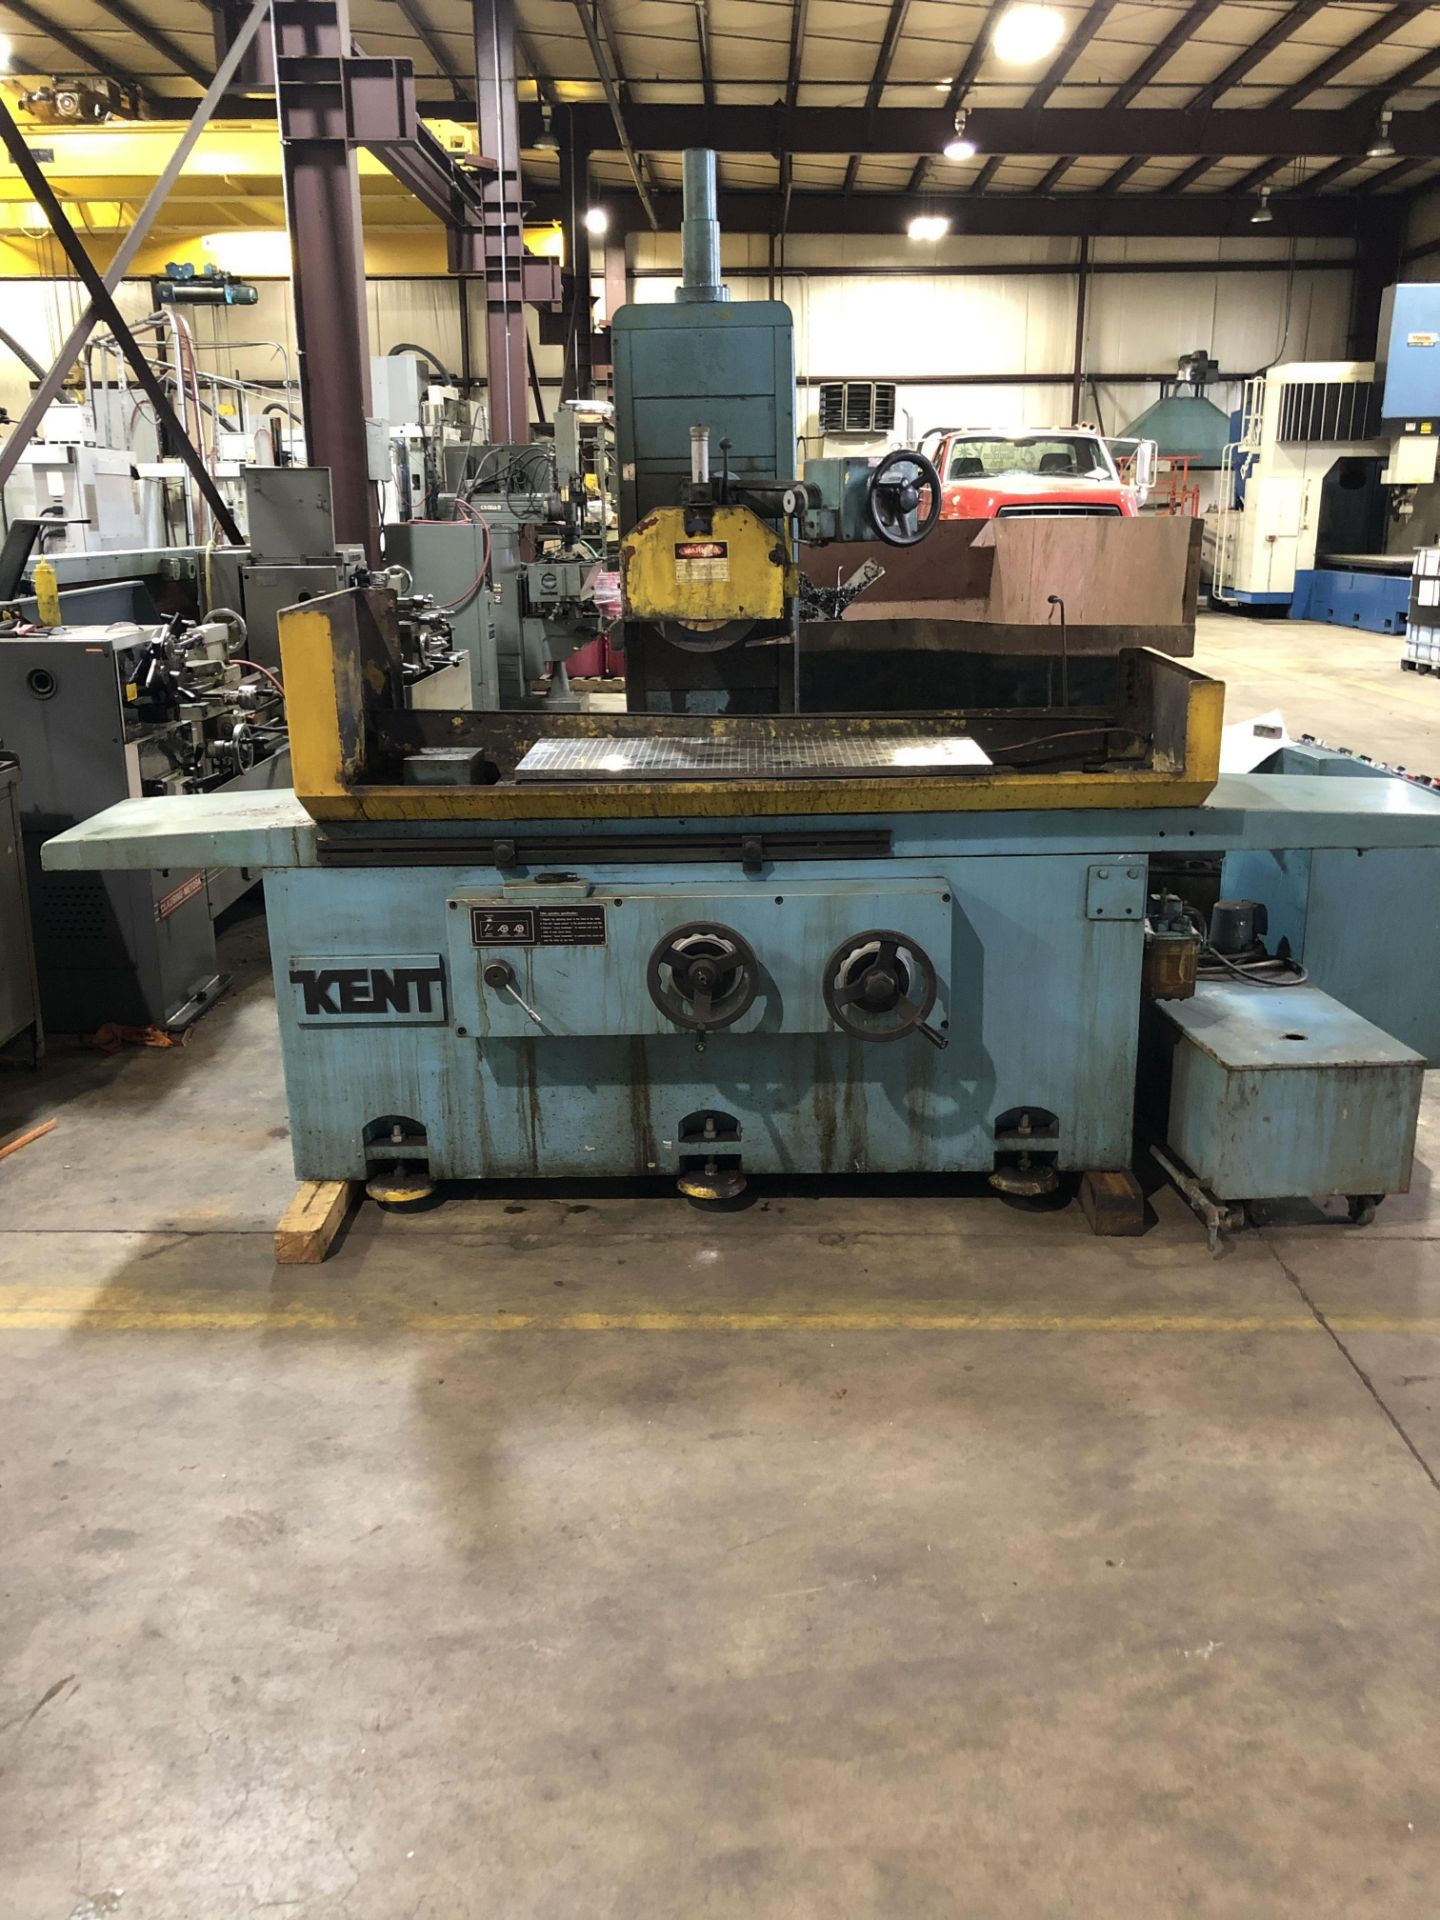 Kent KGS-410AHD SURFACE GRINDER - Image 12 of 16